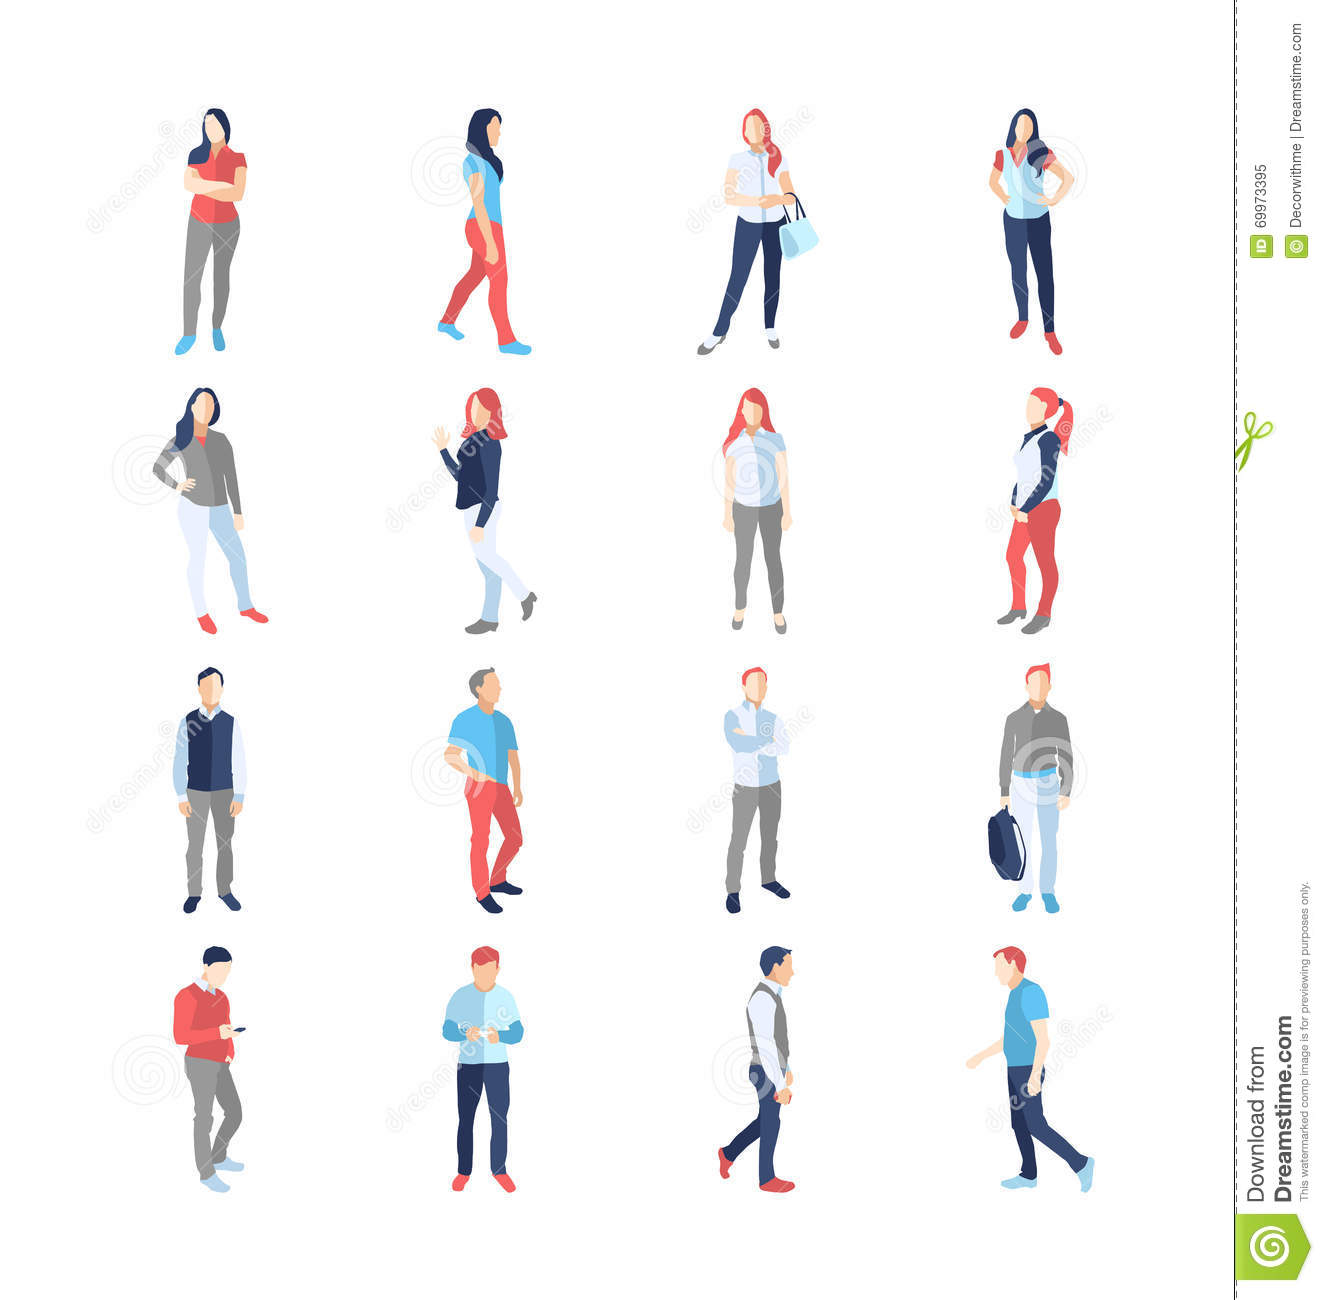 People, Male, Female, In Different Casual Common Poses